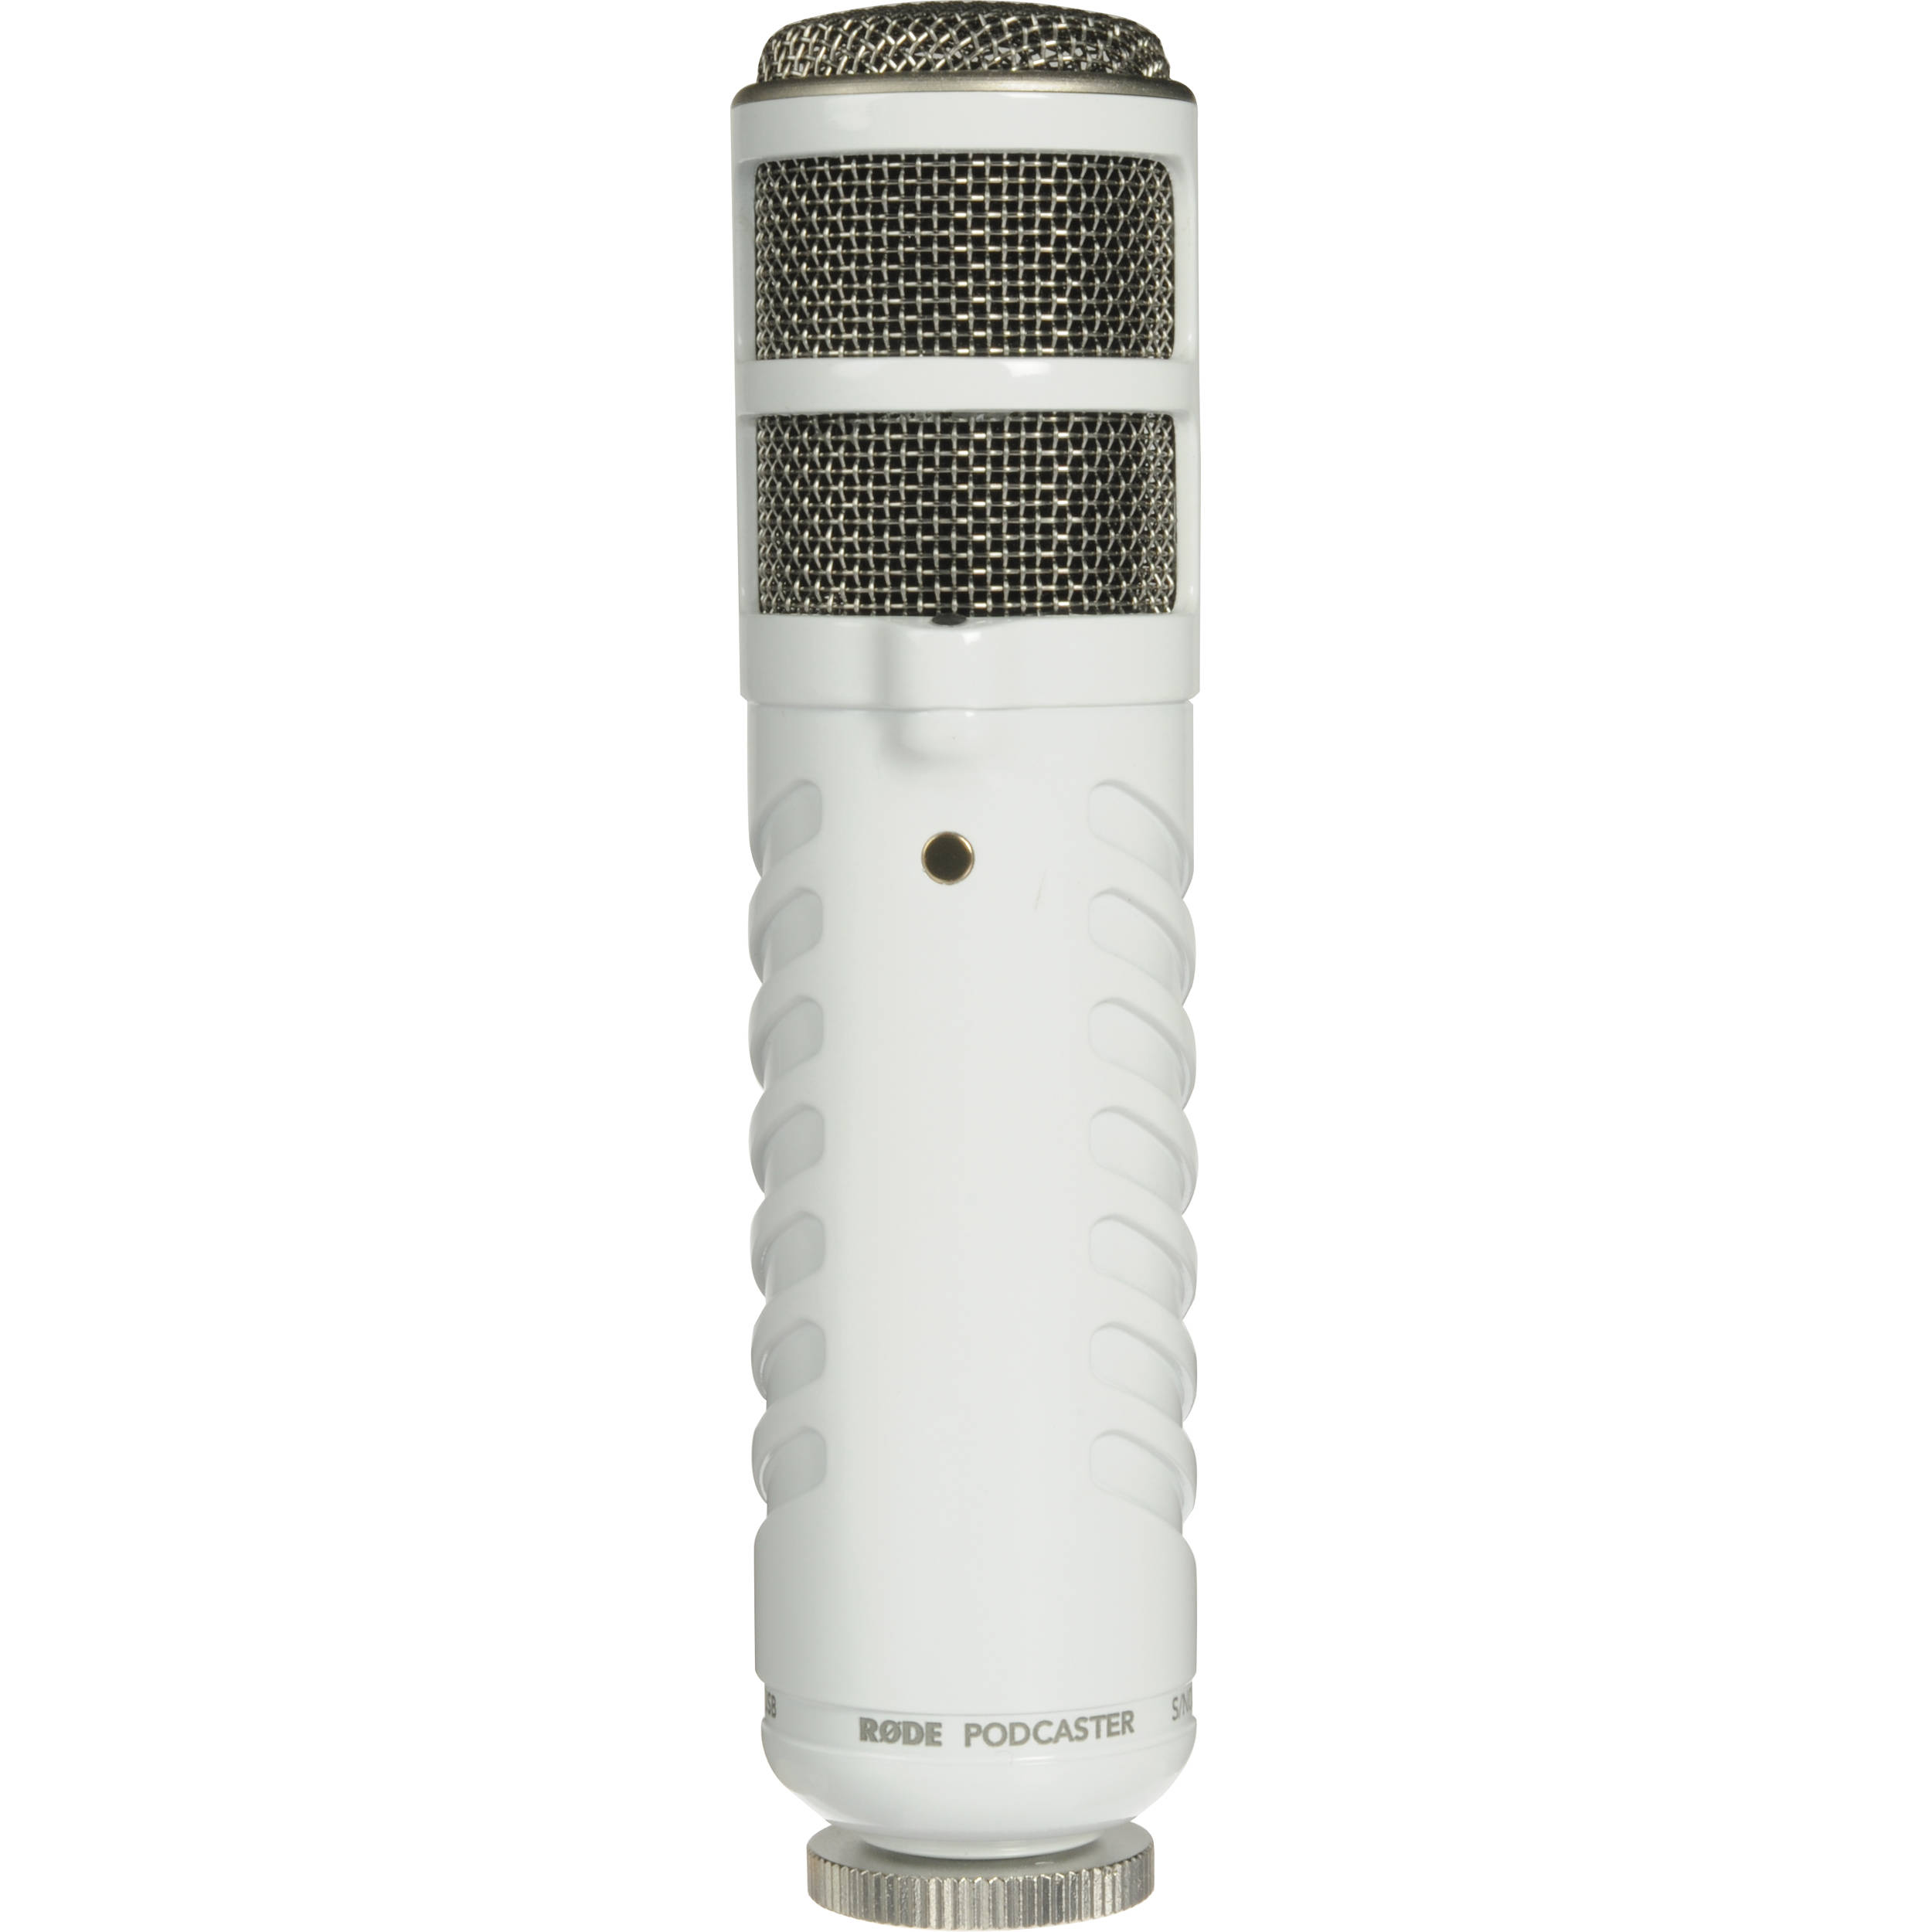 Rode Podcaster MK2 USB Broadcast Microphone